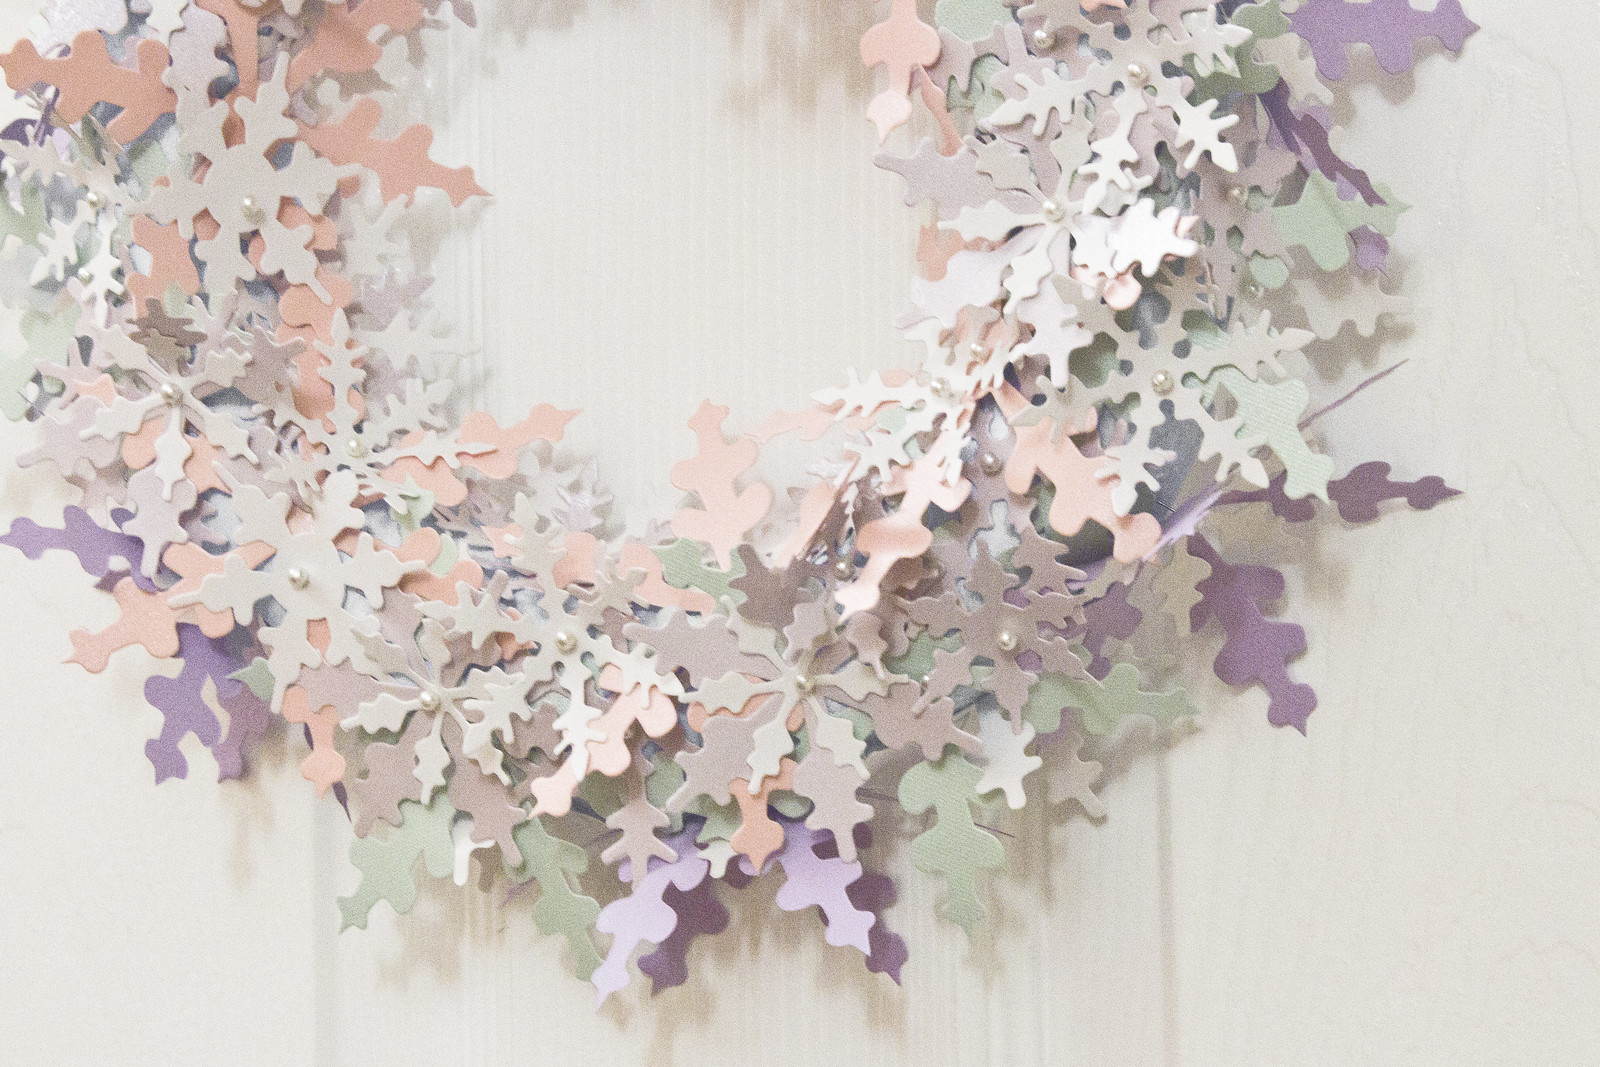 Snowflake wreath made from pastel coloured paper